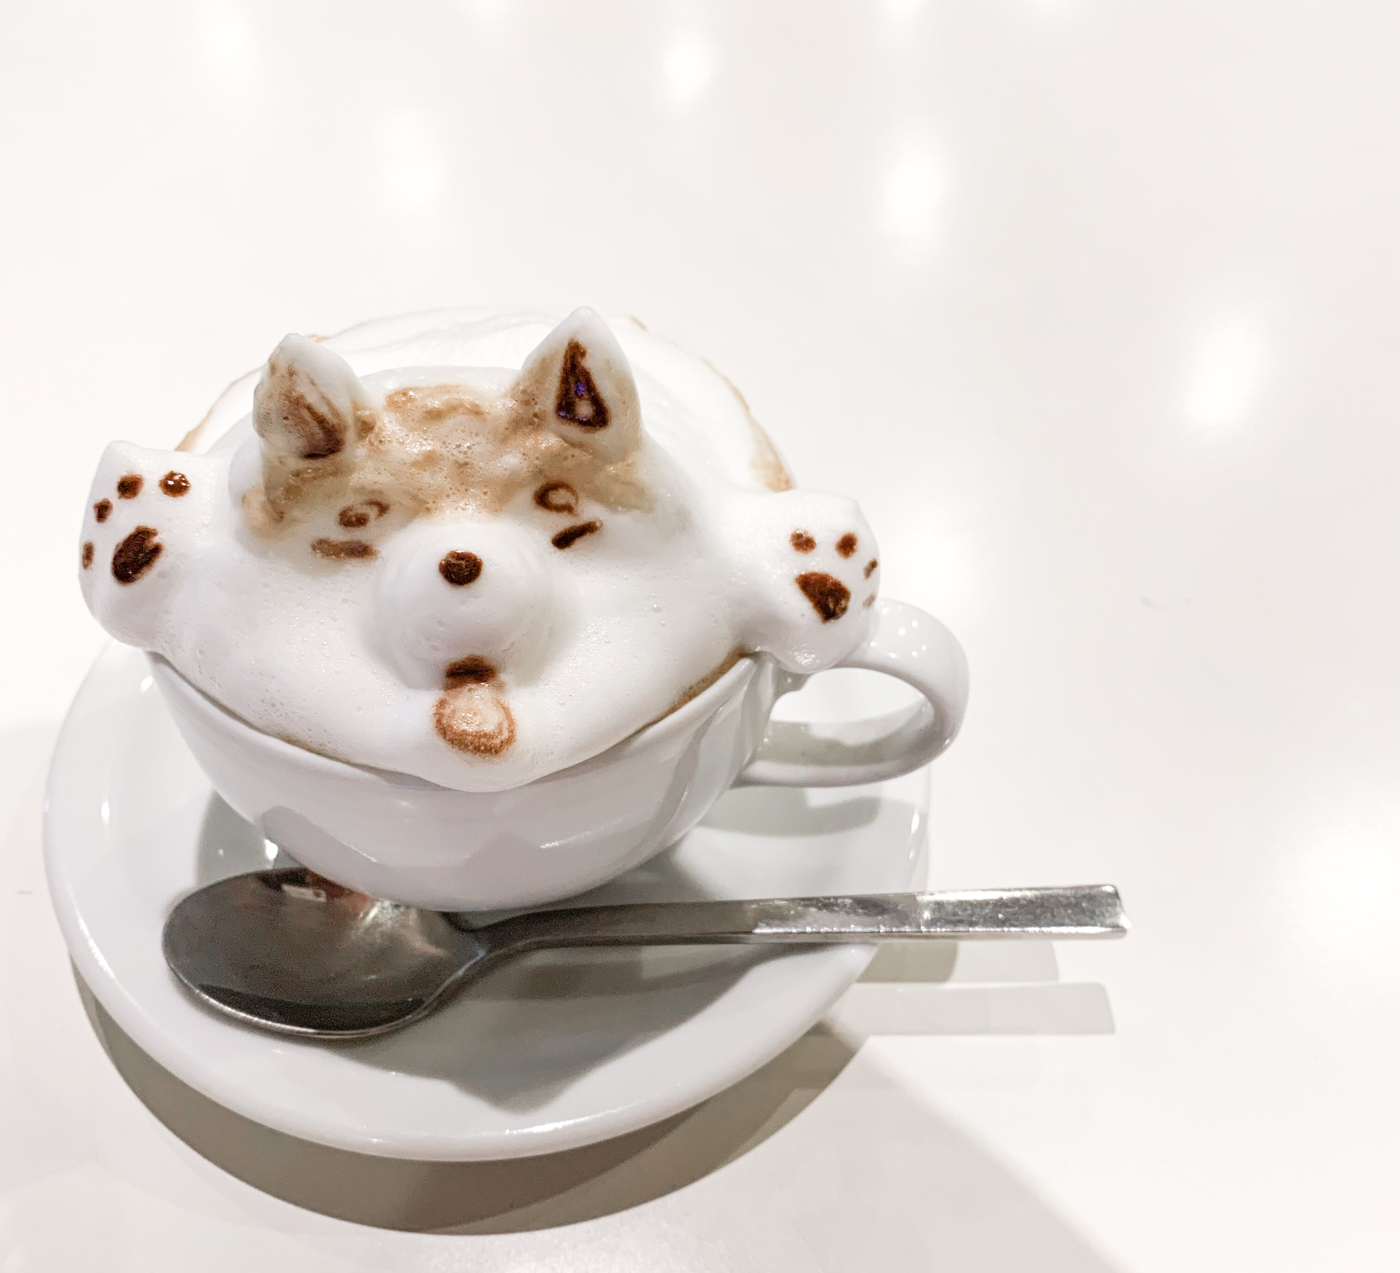 Reissue Cafe (リシュー): 3D latte art